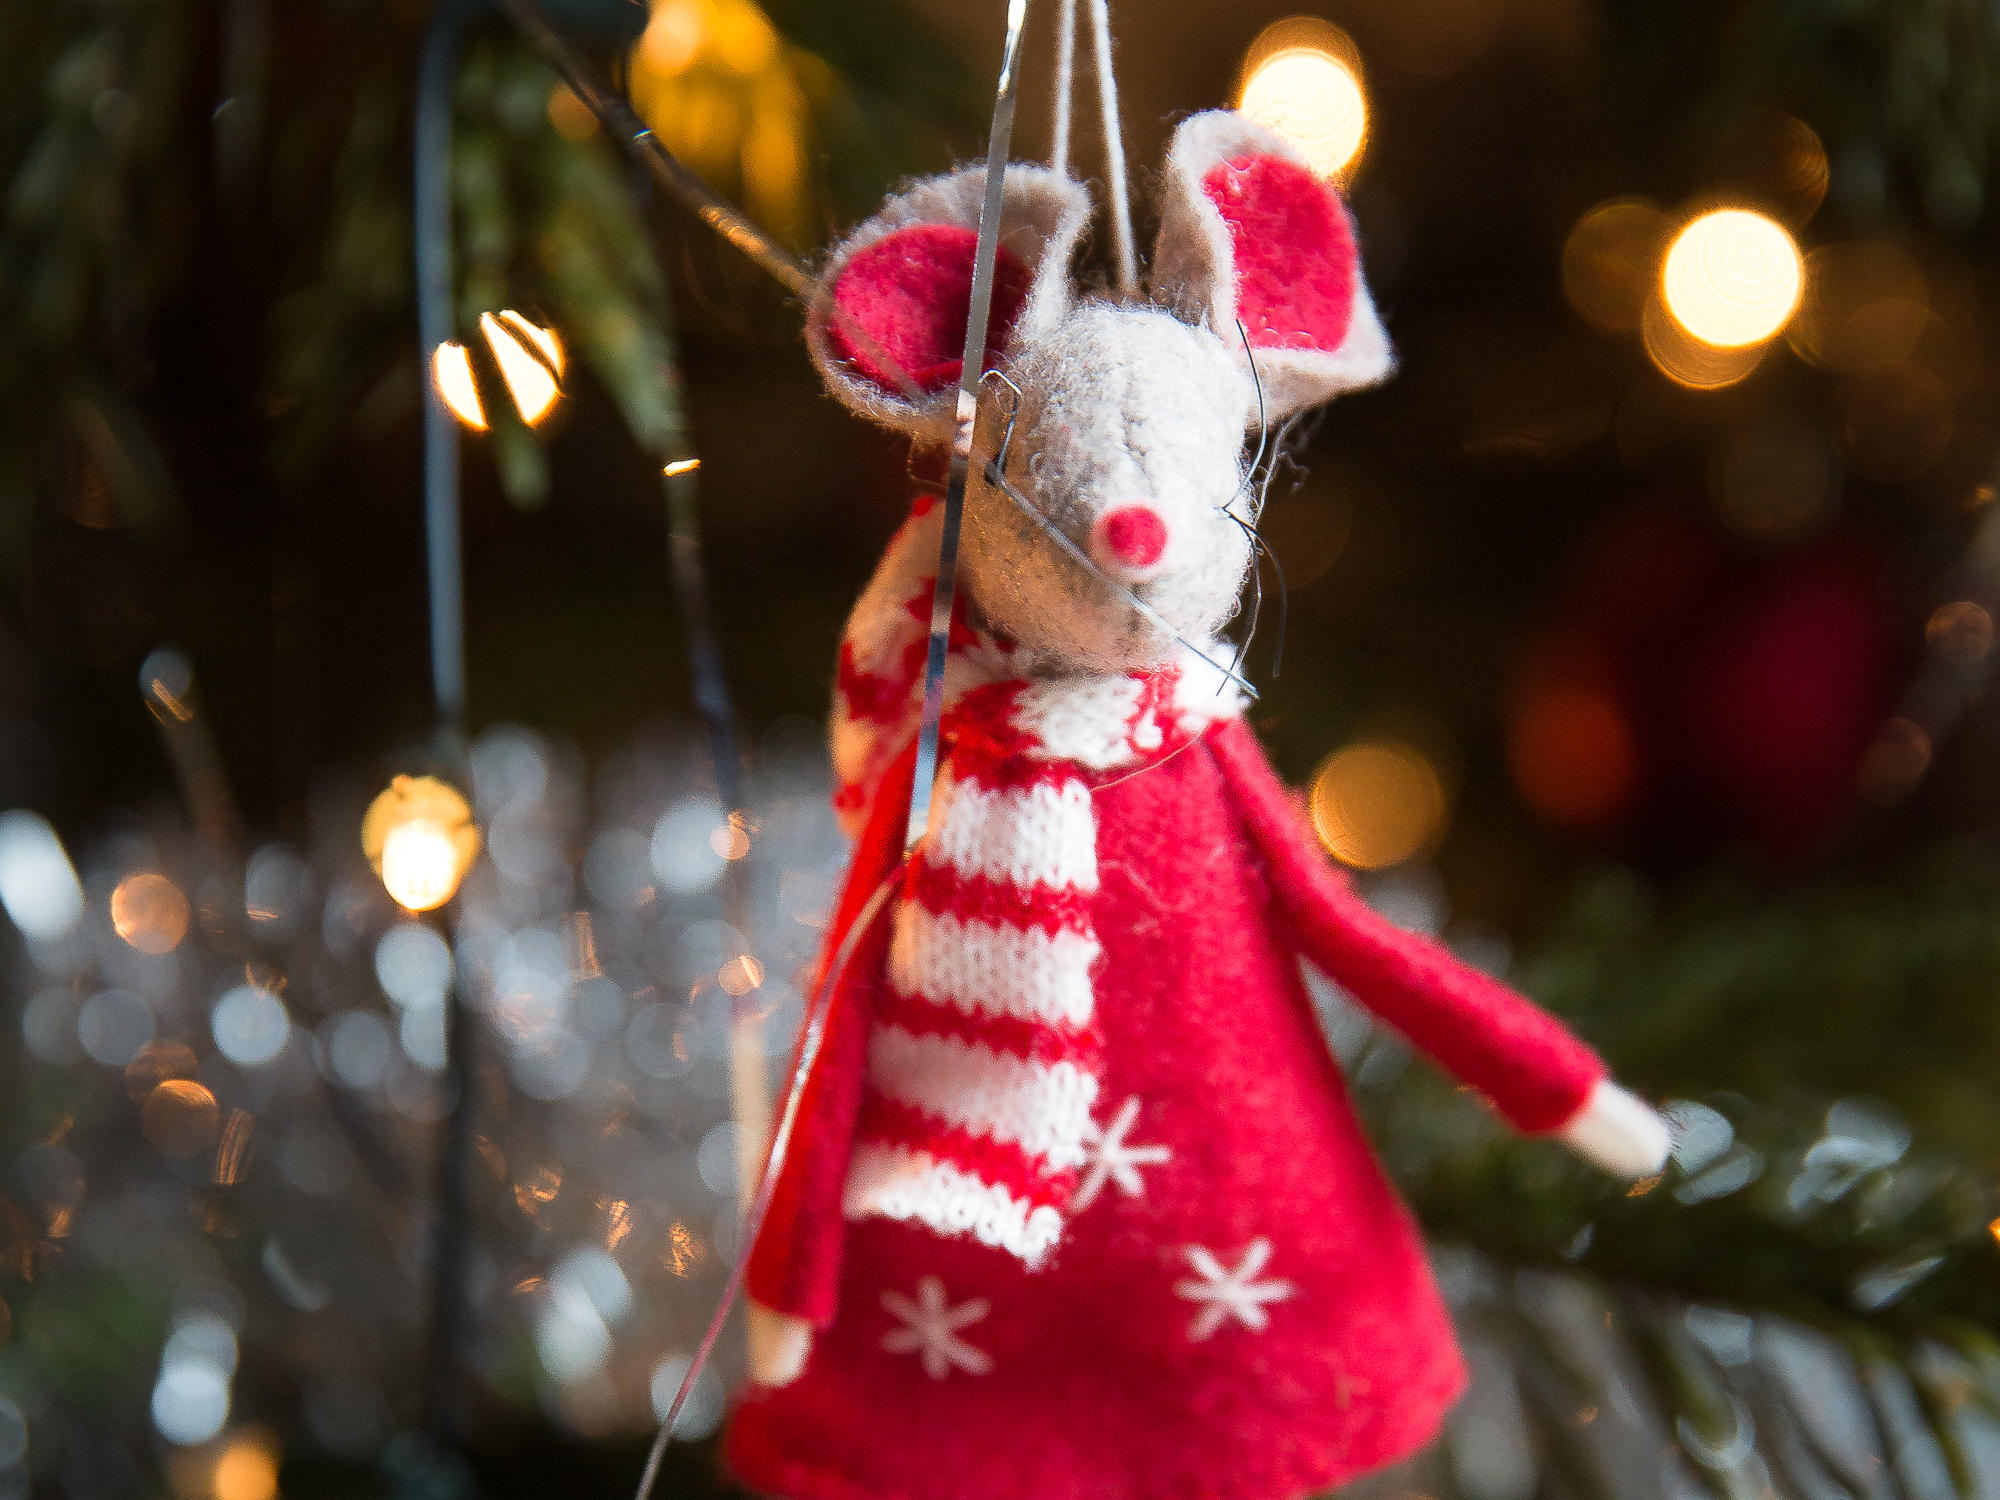 A knitted mouse ornament on a Christmas tree